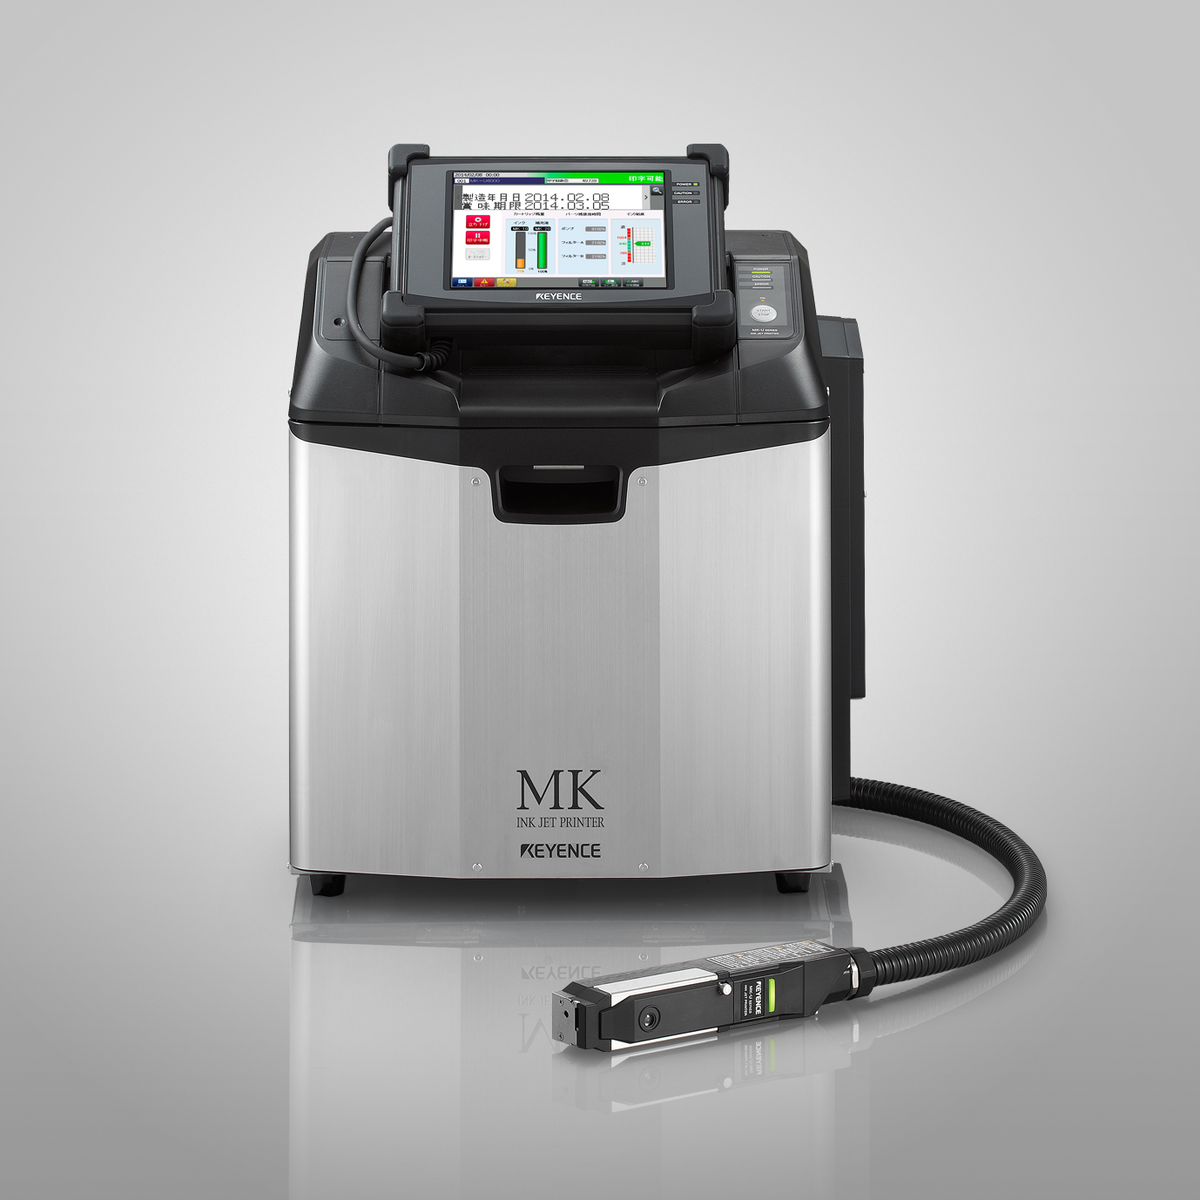 Keyence: Universal Ink-jet Printer From: Keyence Corp. Of